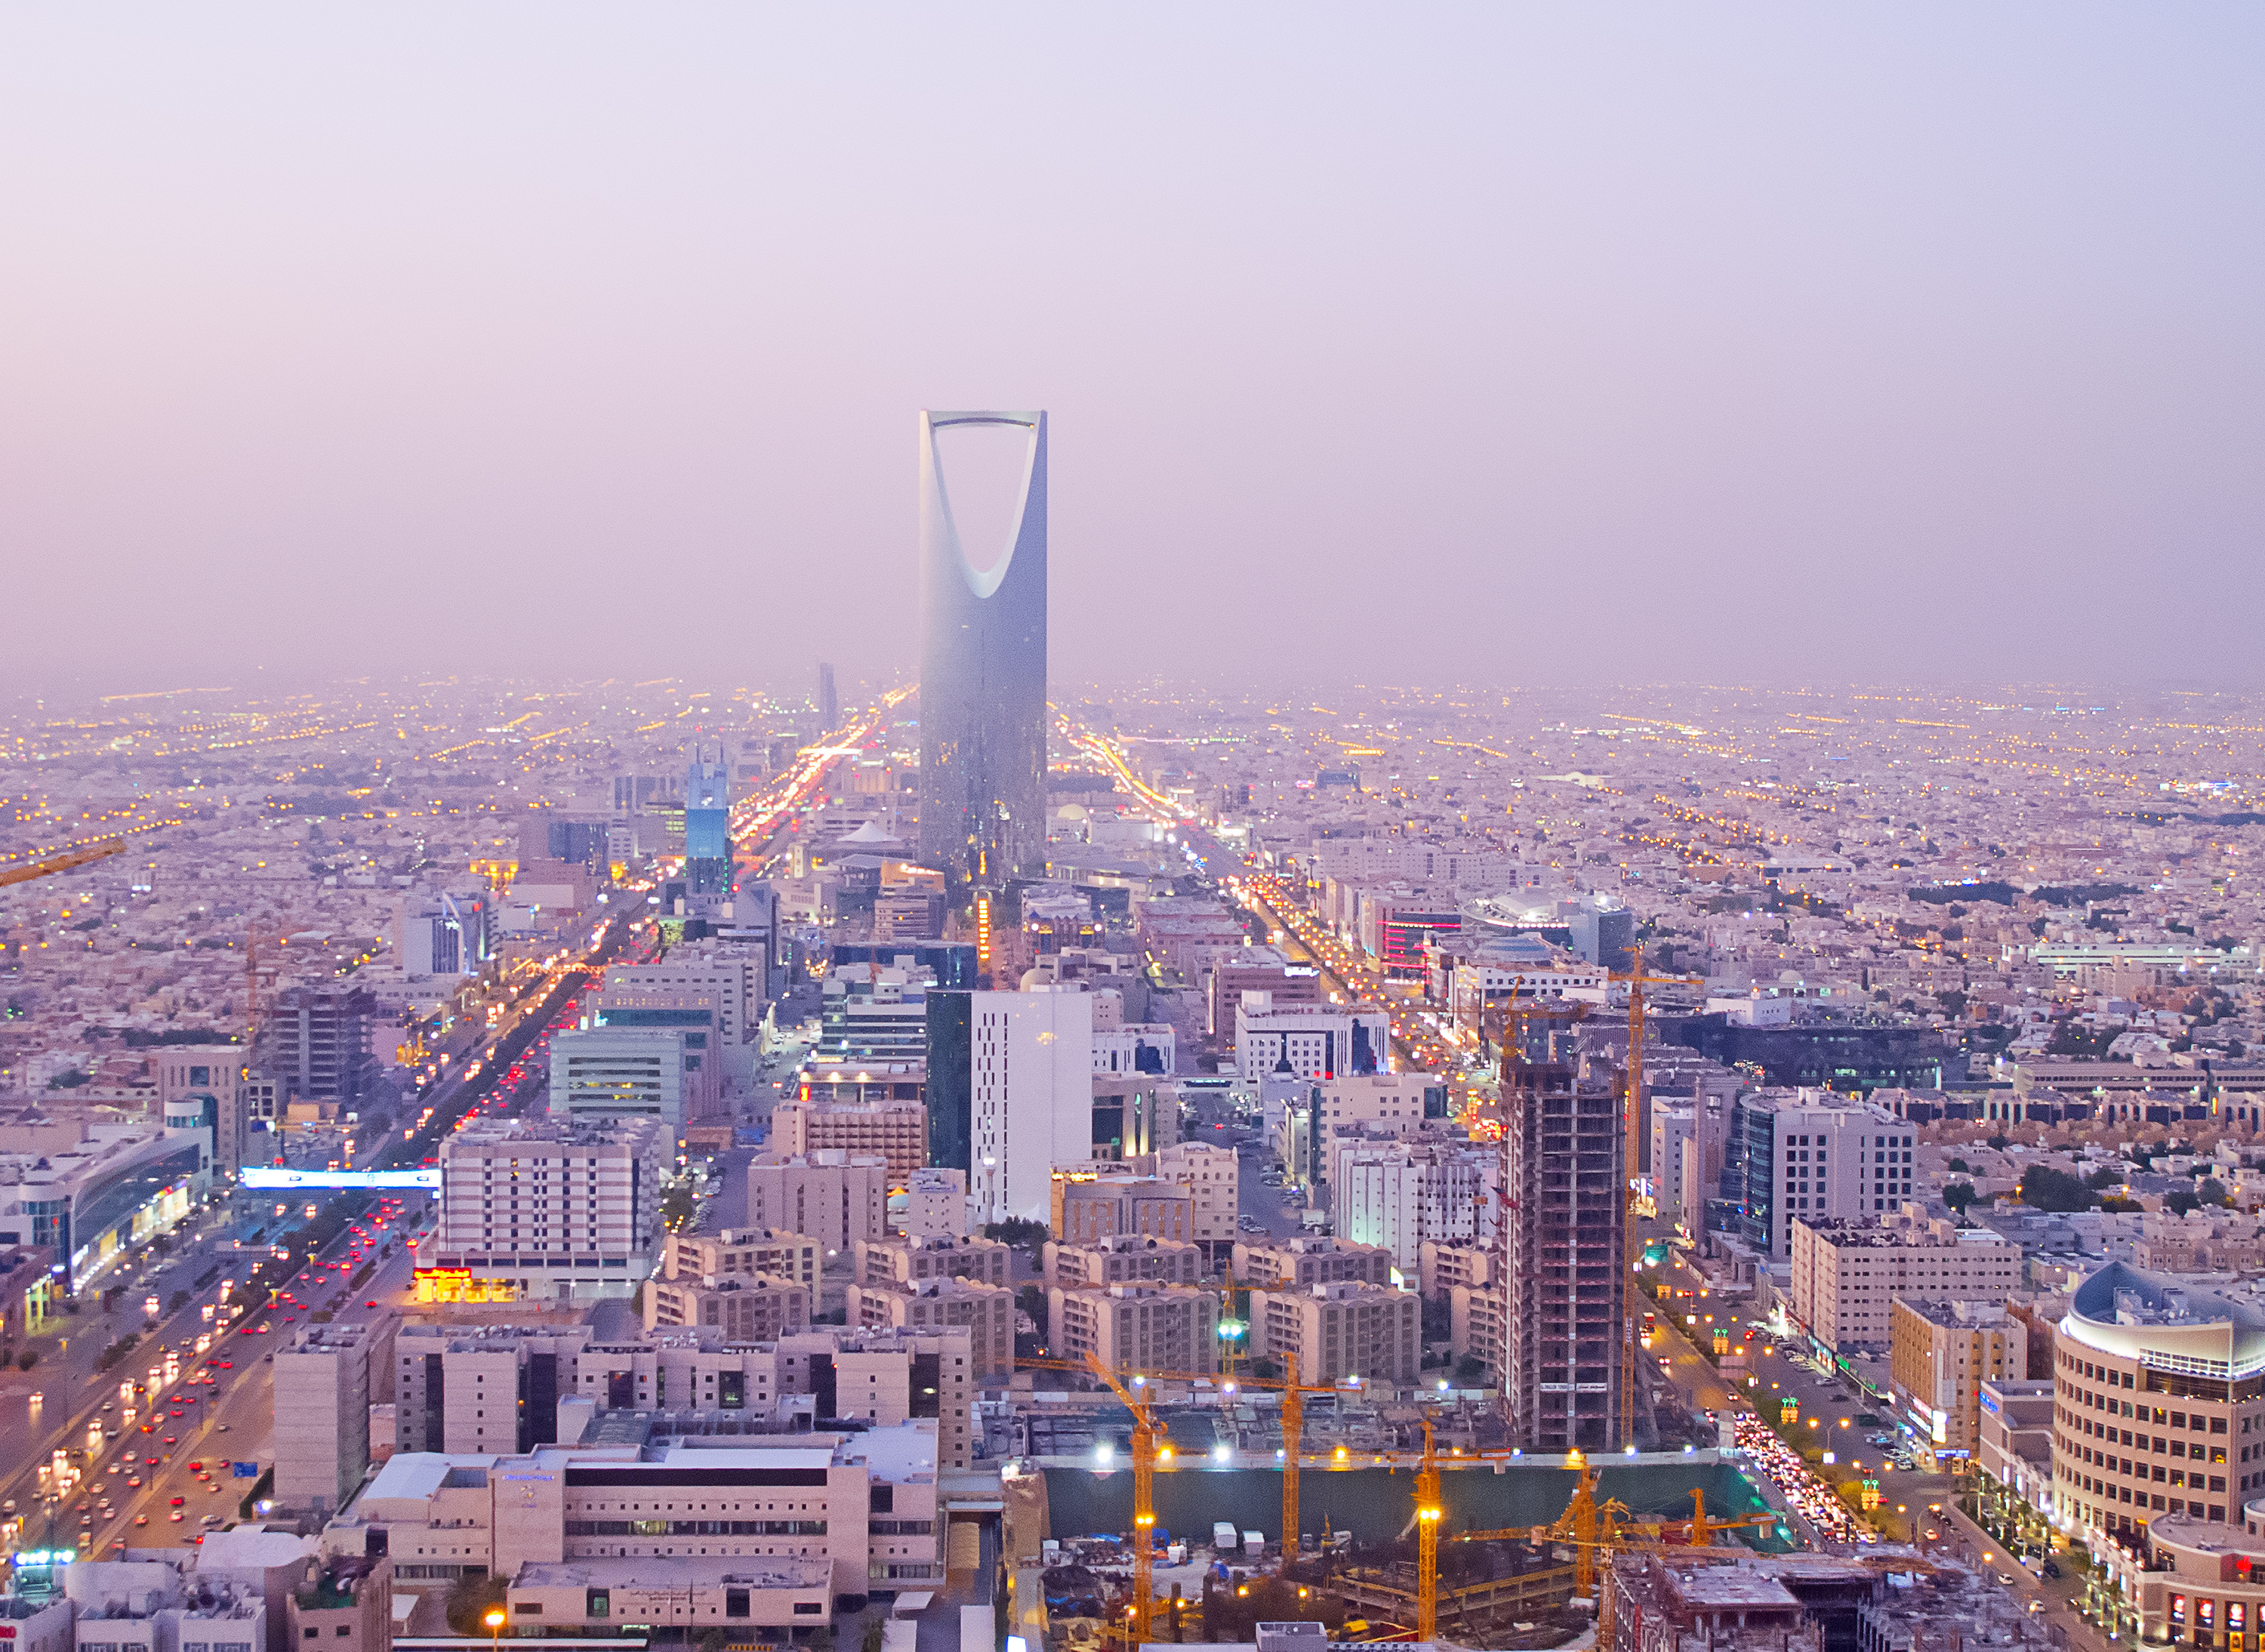 Say goodbye to possible expat jobs in Saudi malls